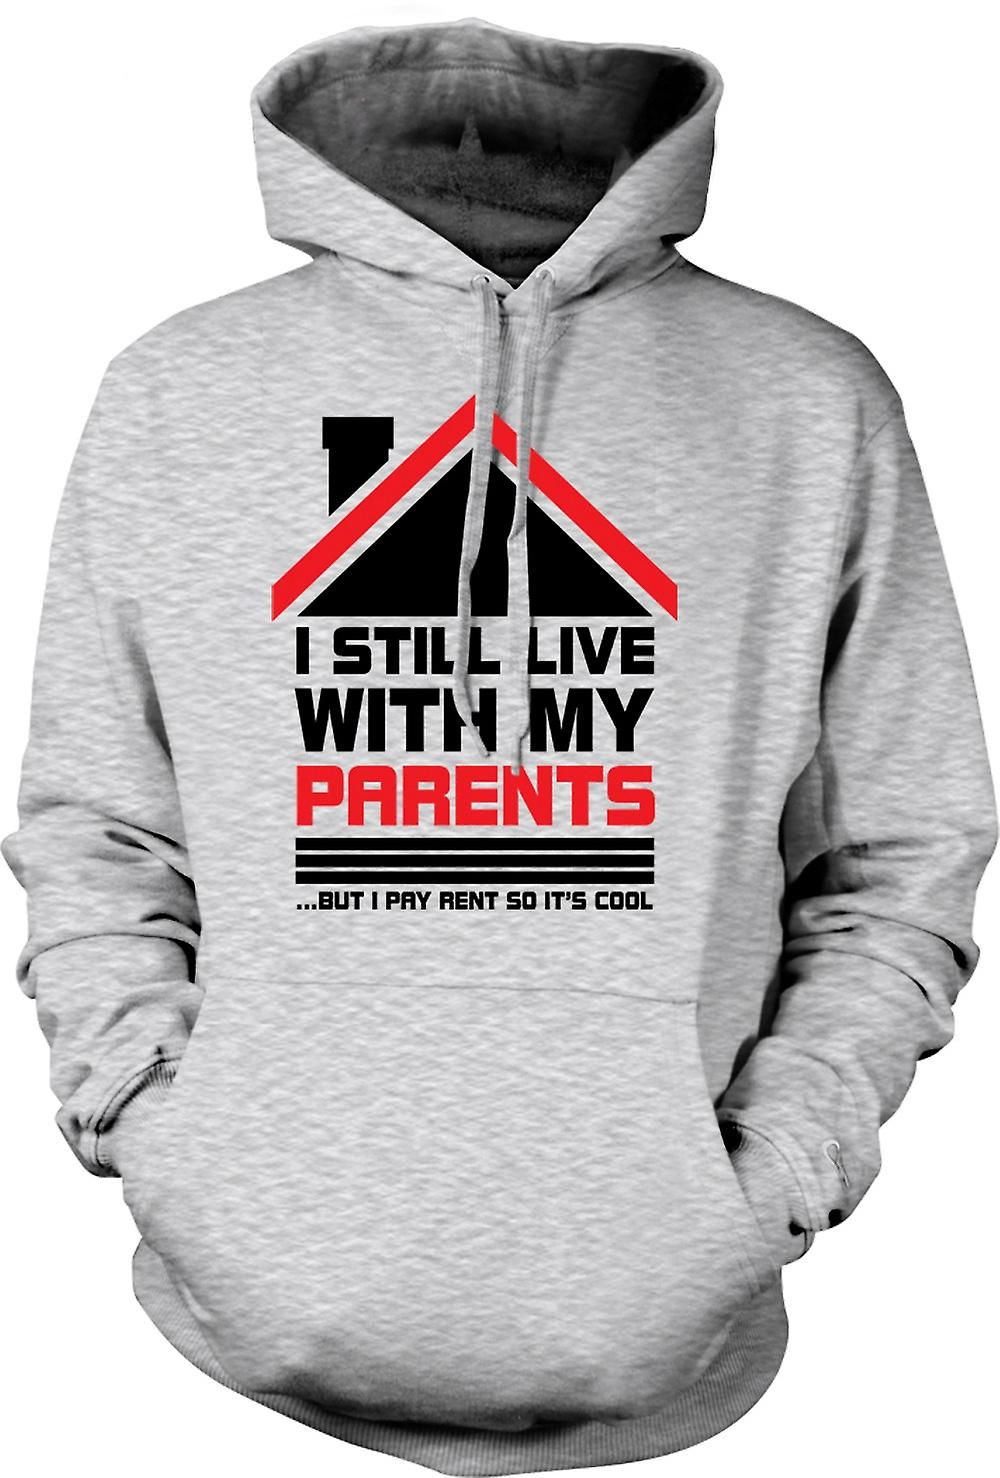 Mens Hoodie - I Still Live With Parents - Funny